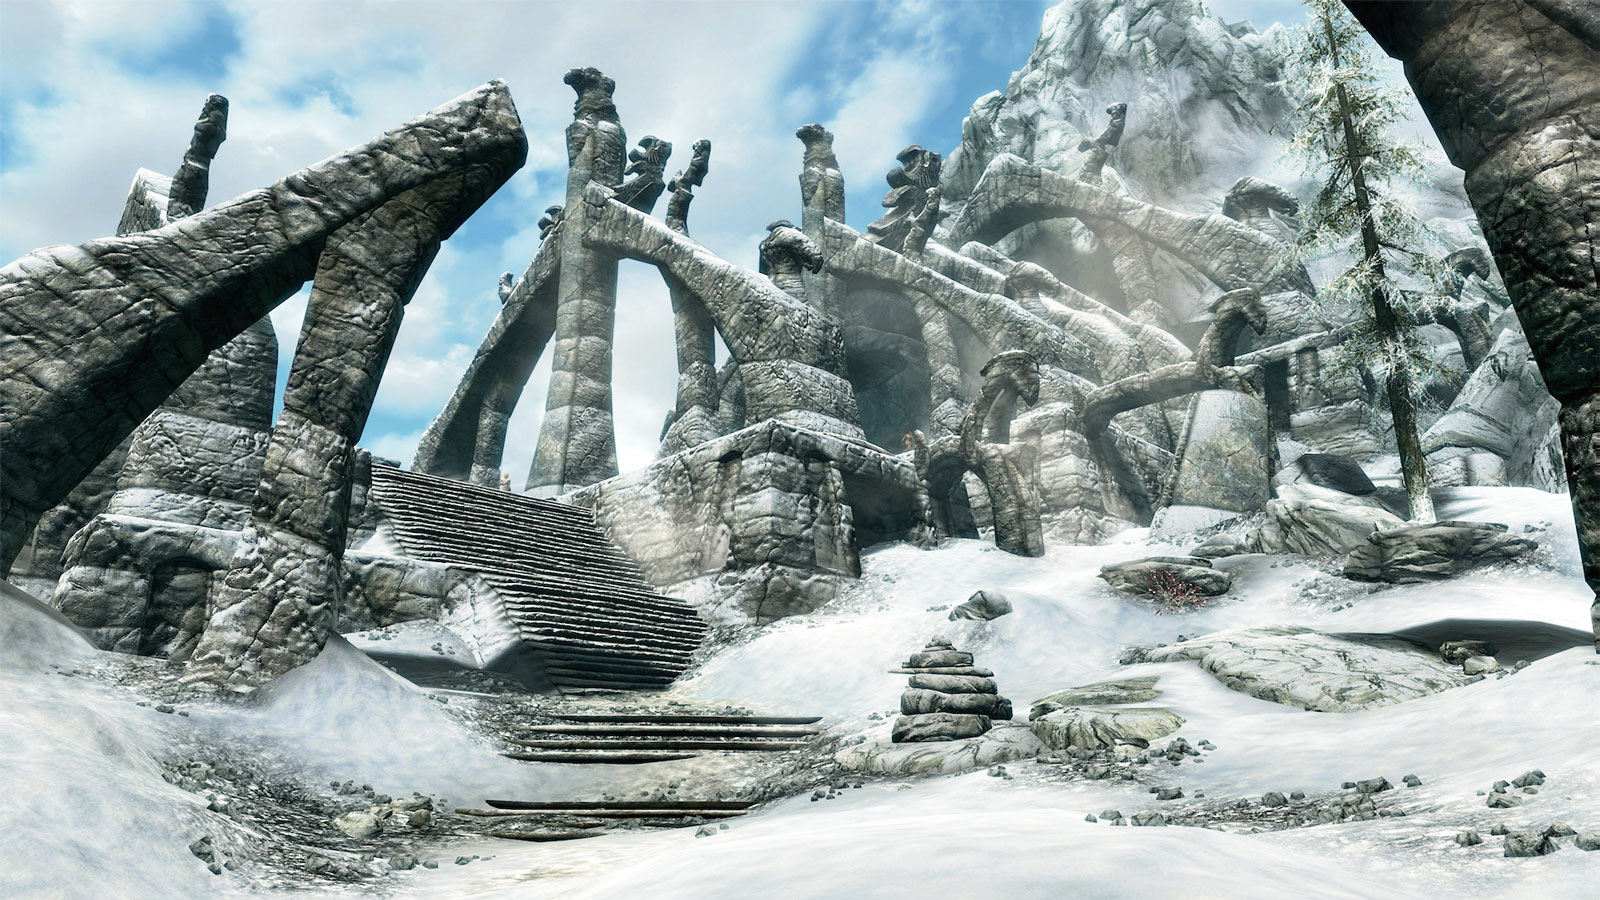 skyrim fallout 4 to offer user mods and ps4 pro support skyrim fallout 4 to offer user mods and ps4 pro support